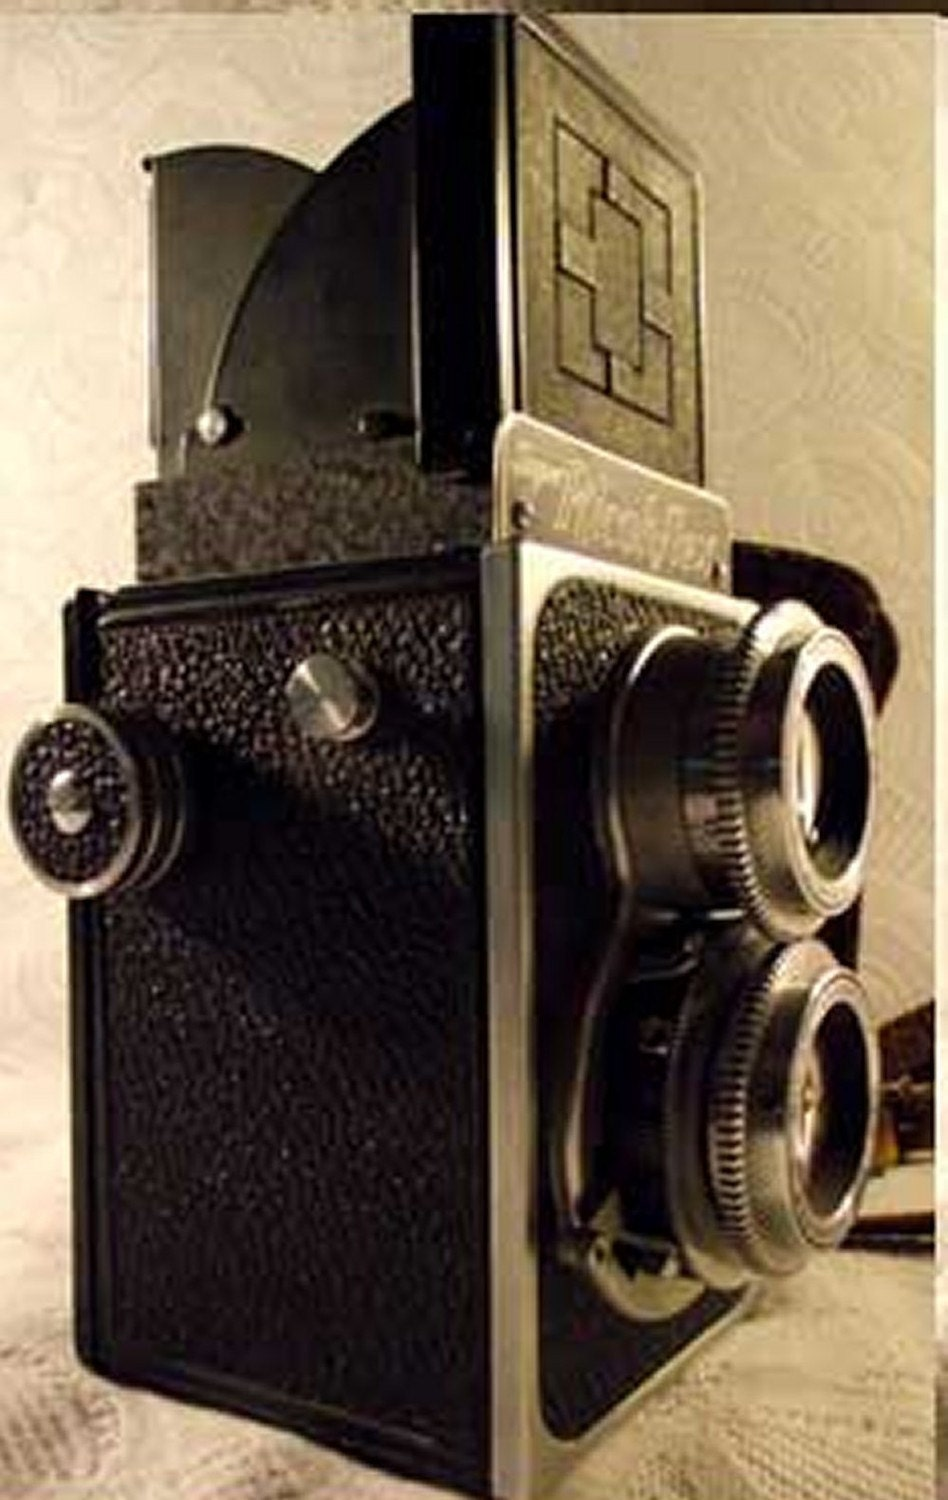 Super Ricohflex Vintage Film Camera